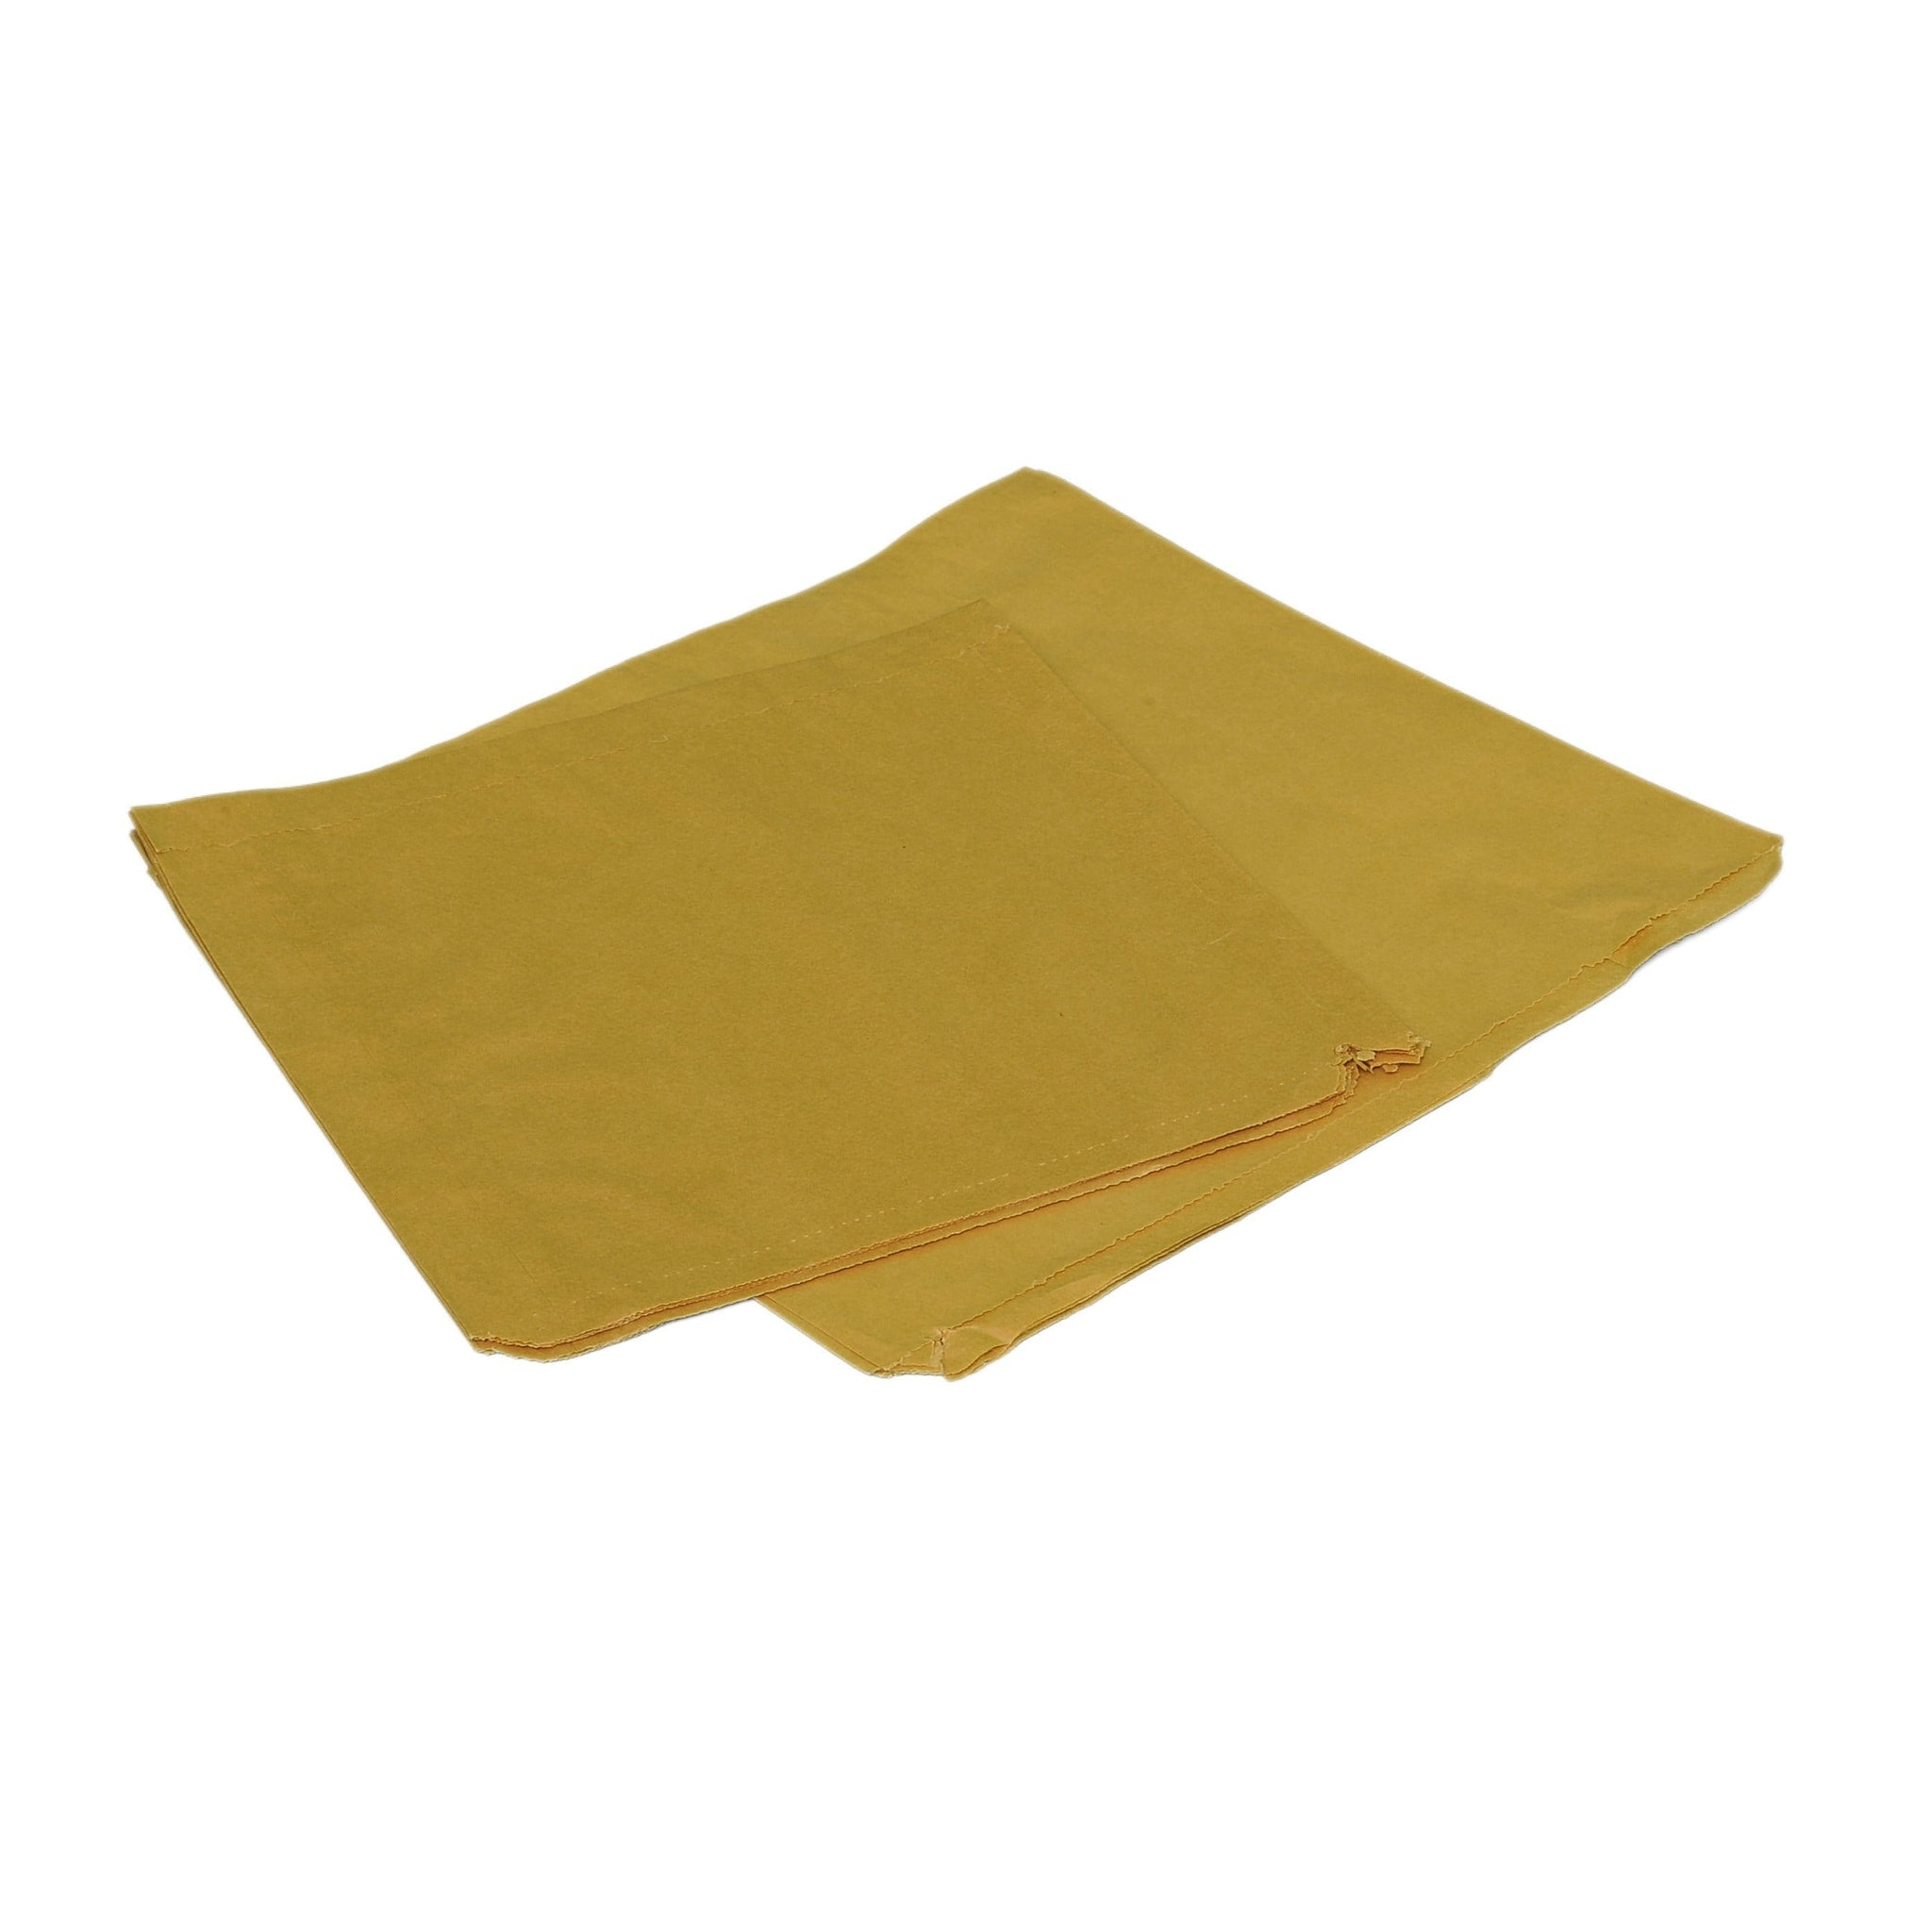 Paper Bags - Brown Kraft - Recyclable & Compostable - Evolution Packaging Products